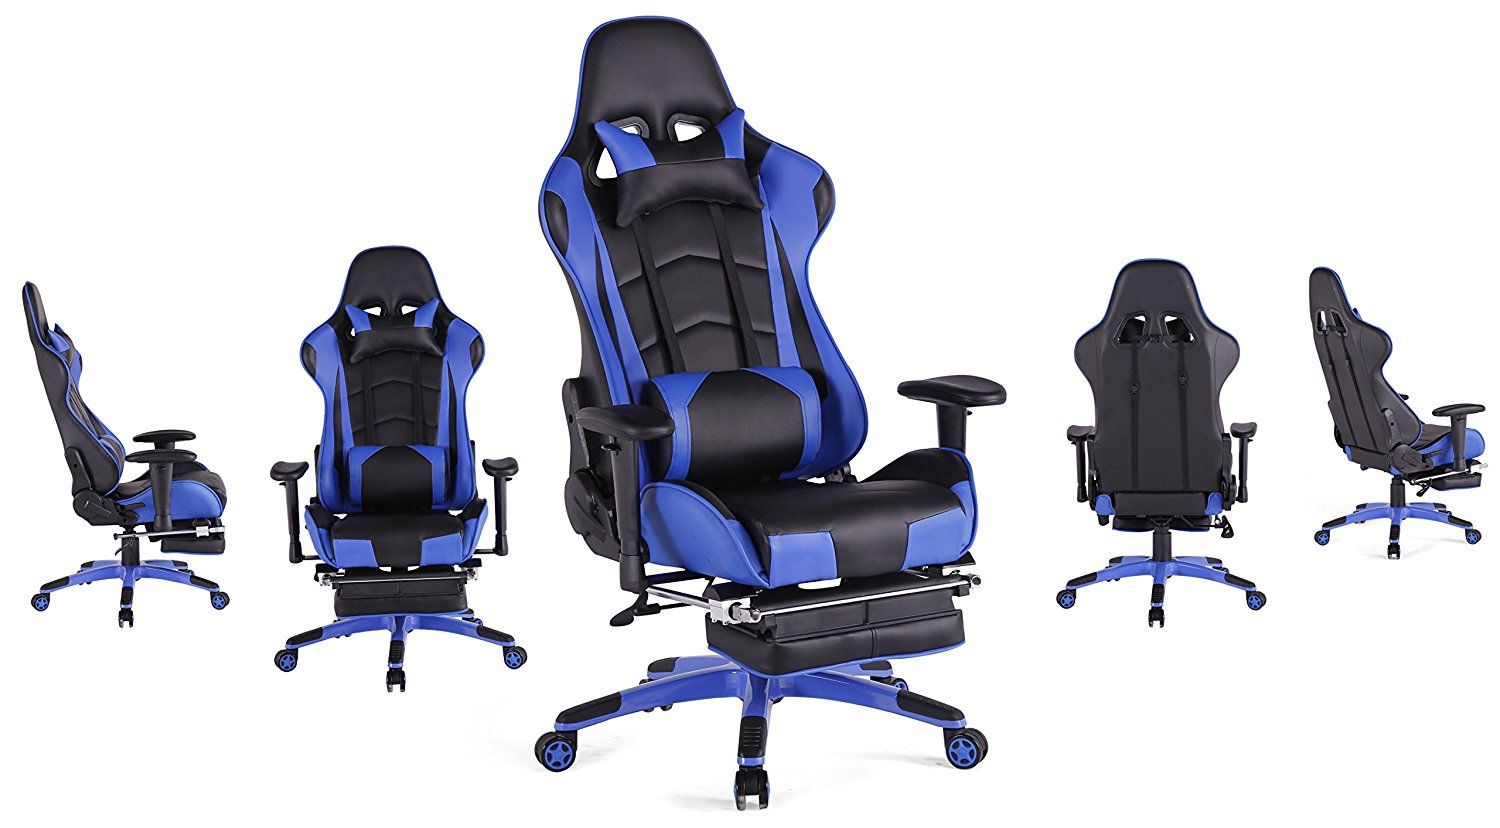 Tremendous Top 7 Best Gaming Chairs 2017 Top 7 Best Gaming Chairs Machost Co Dining Chair Design Ideas Machostcouk